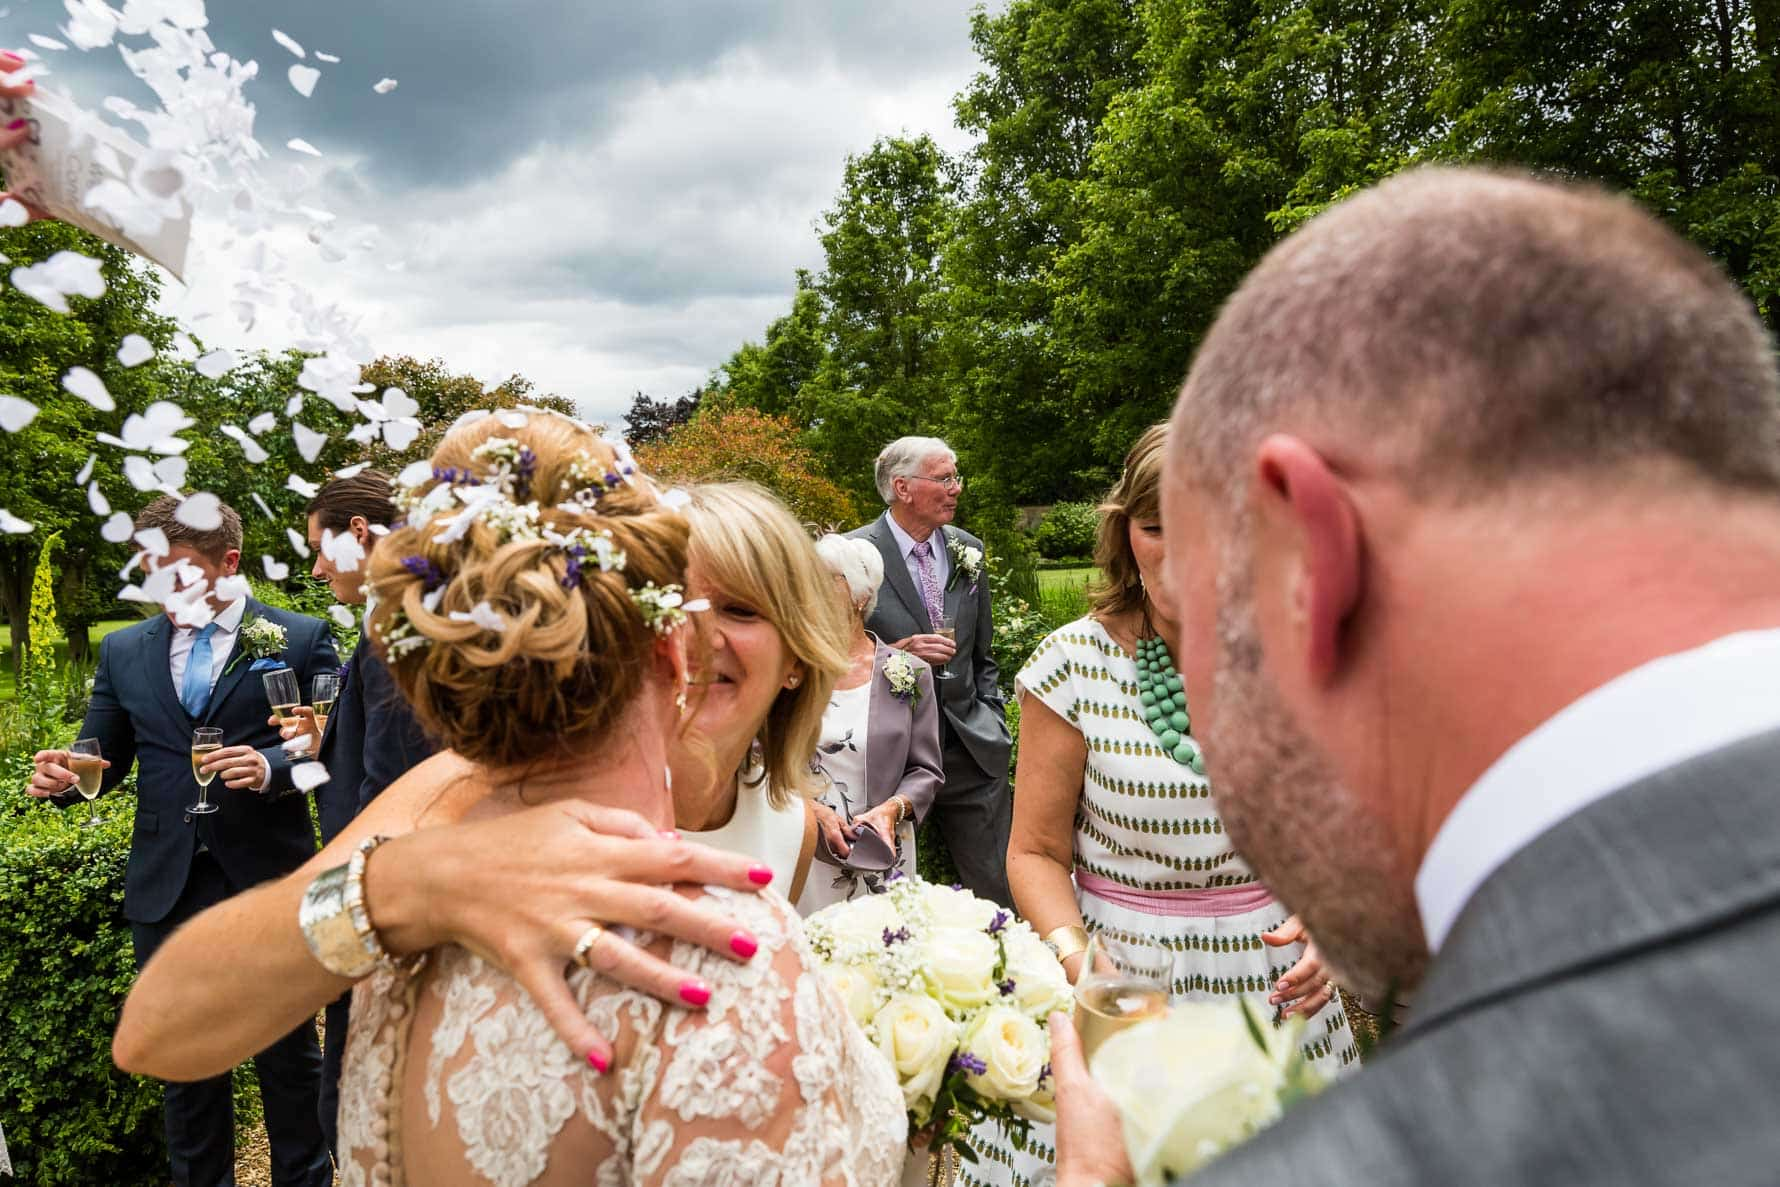 A hug and a kiss for the bride at Hanbury Manor wedding by Hertfordshire wedding photographer Graham Warrellow